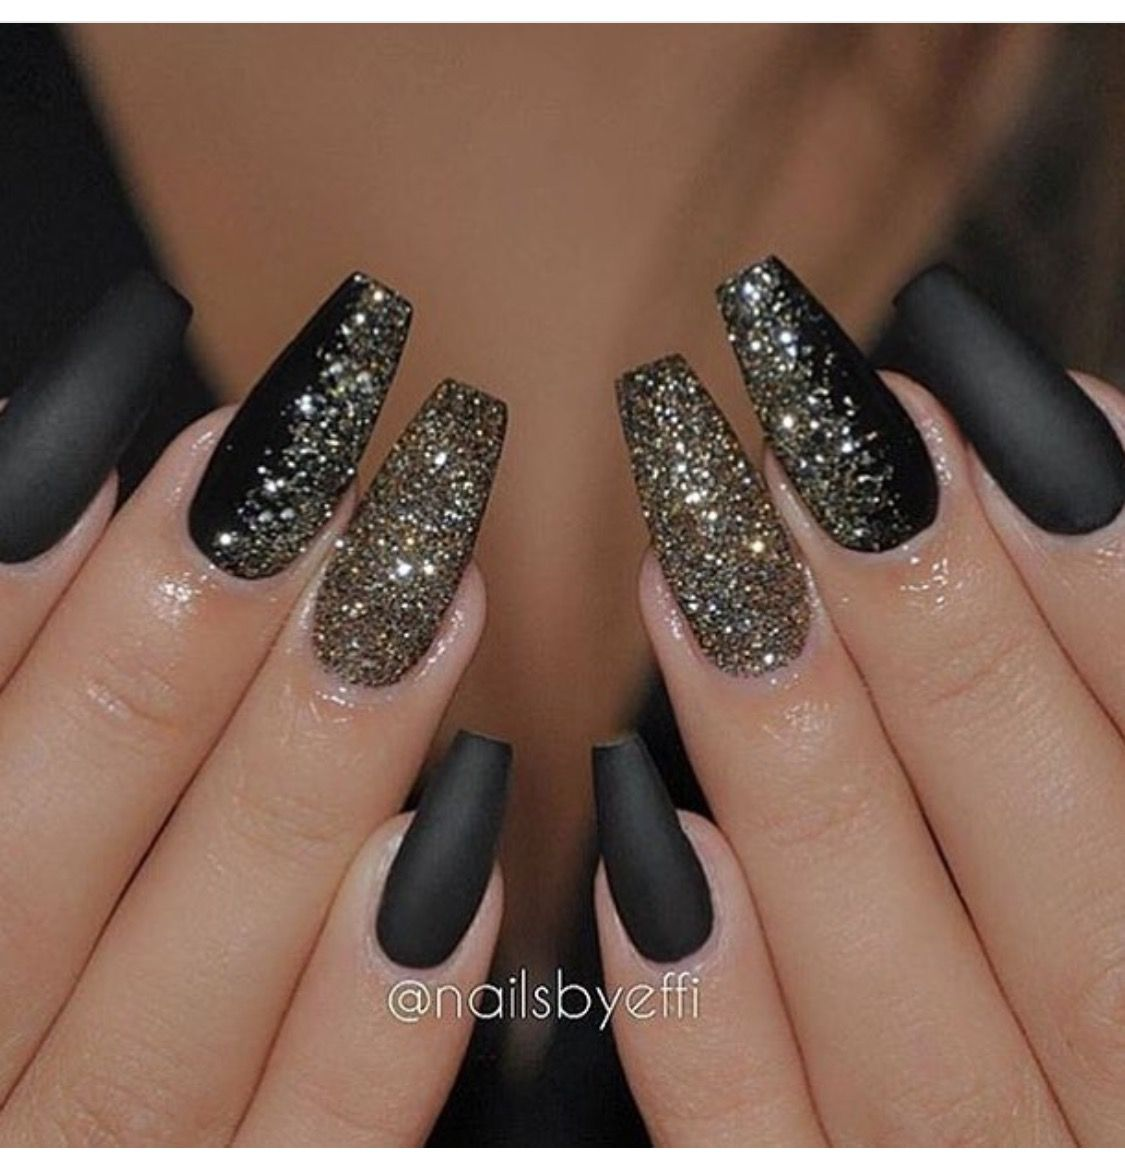 Pin by Luisa Ortiz on Nails | Pinterest | Prom nails and Makeup